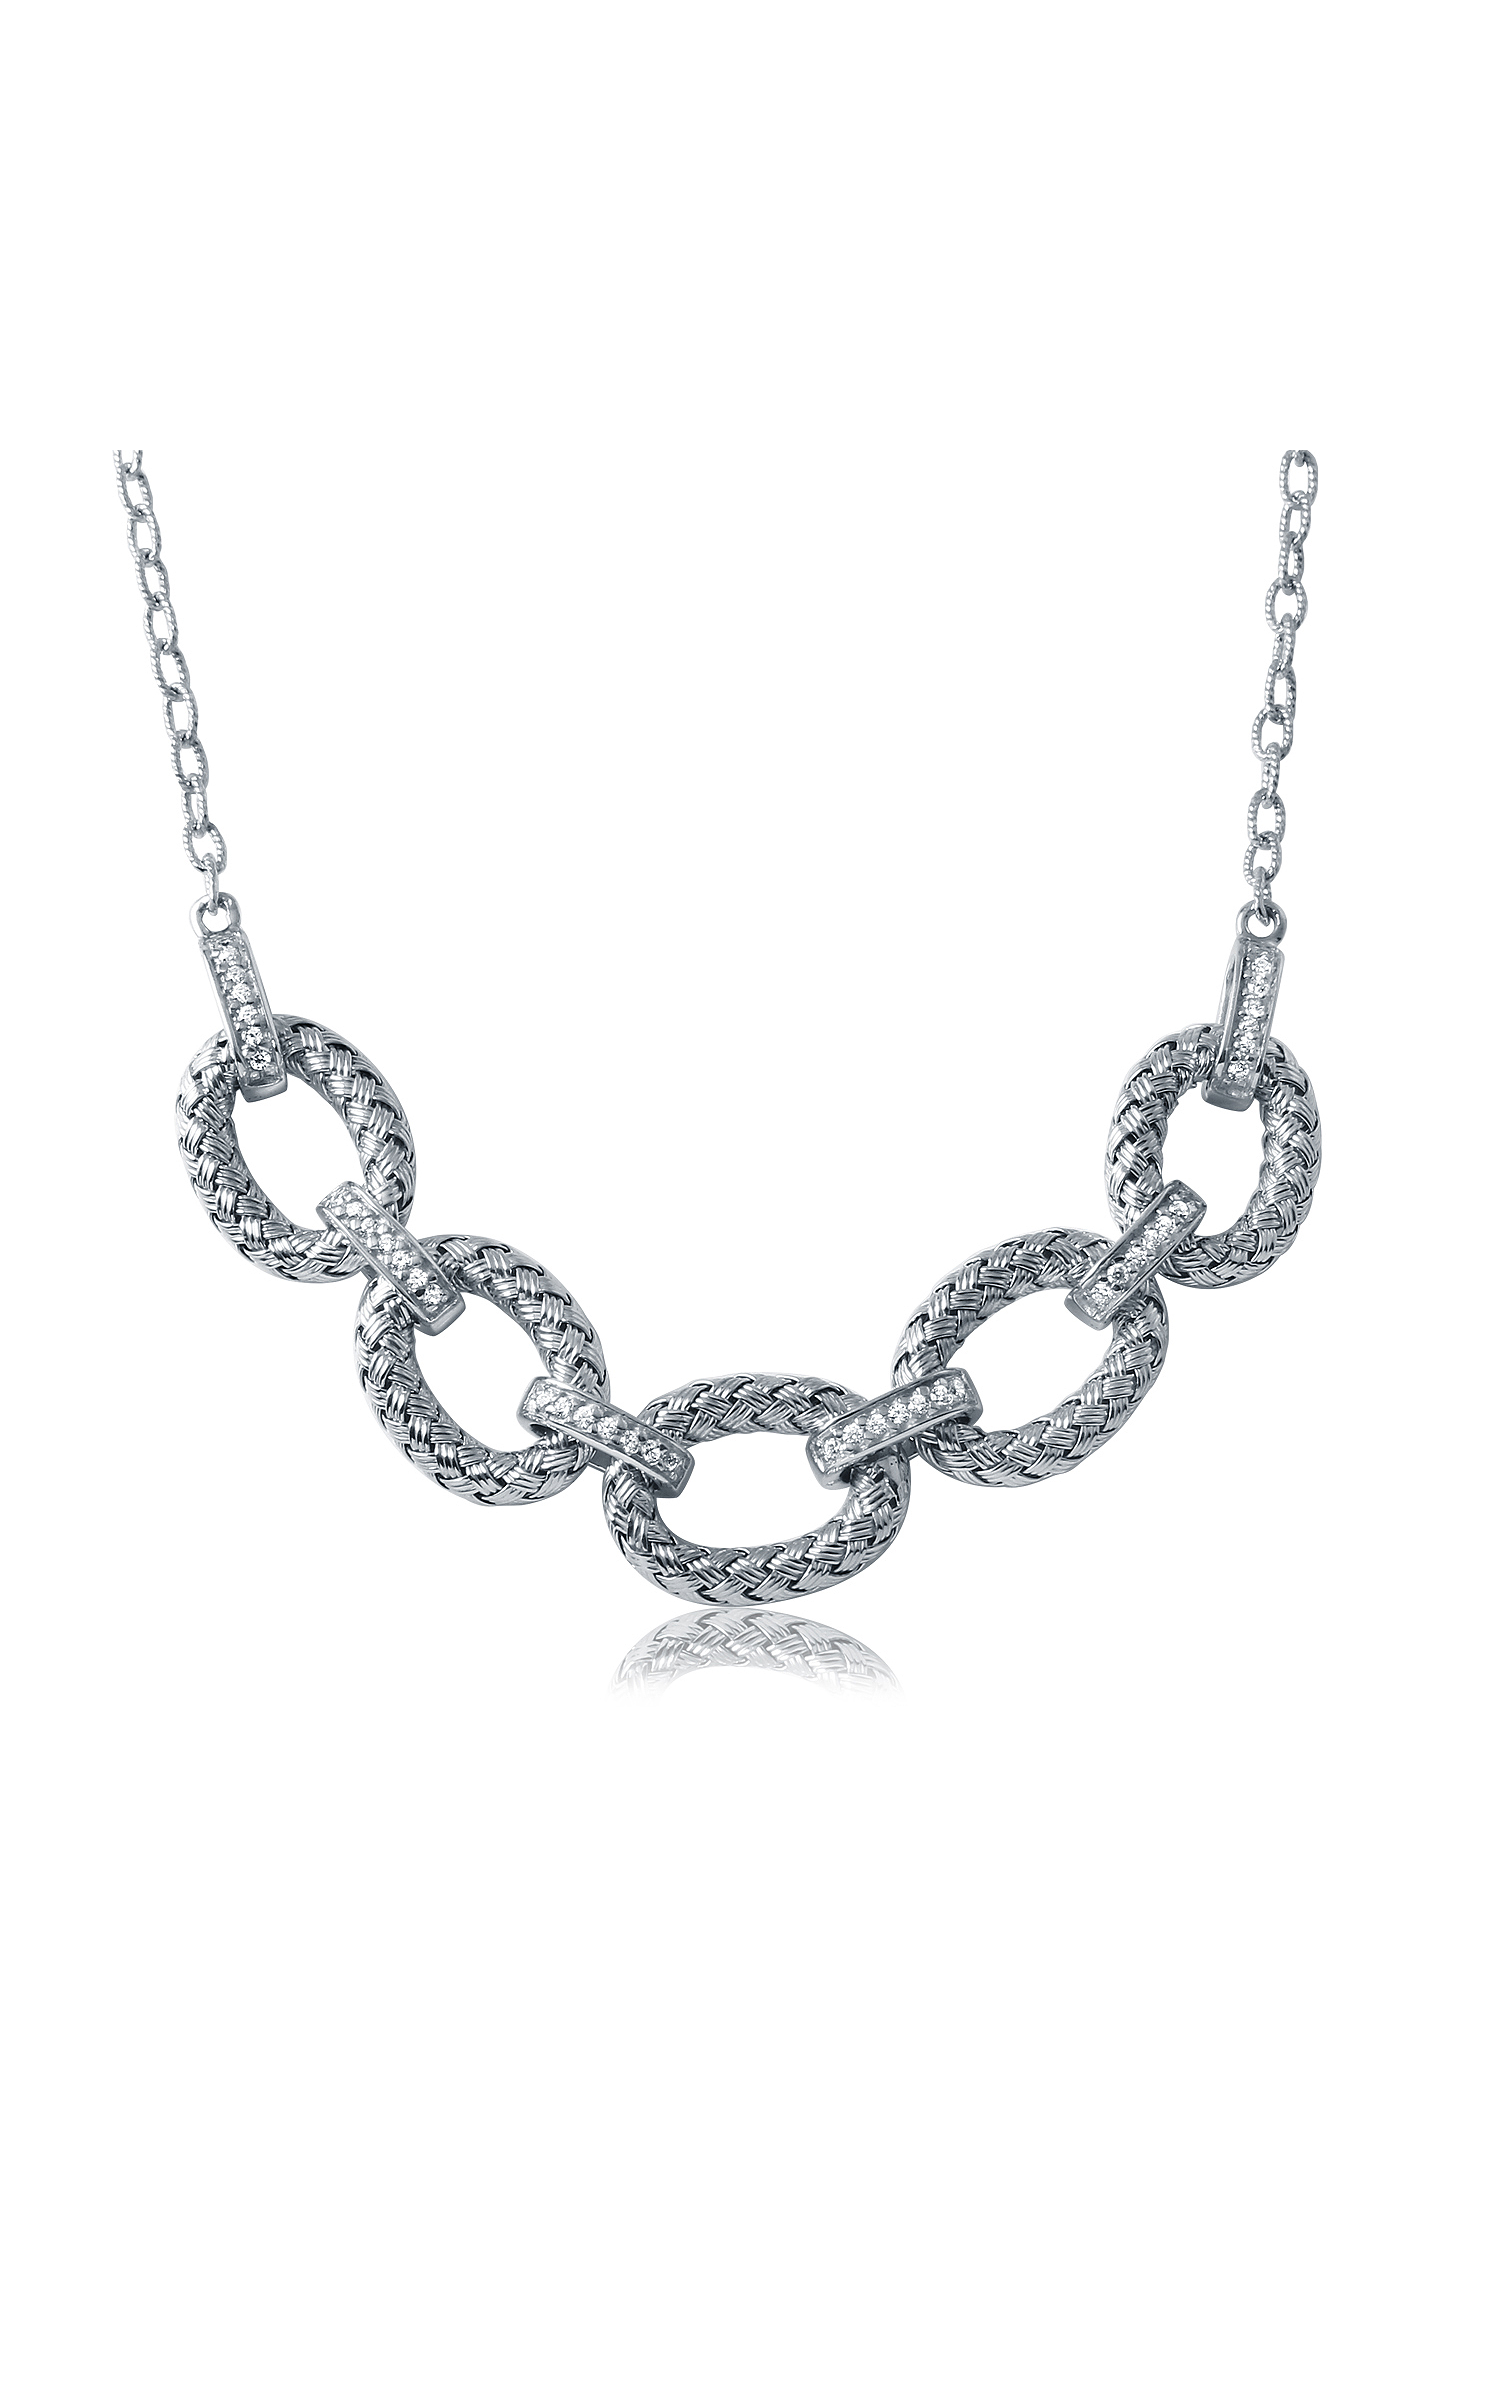 Charles Garnier Necklaces Necklace Paolo Collection MLN8204WZ17 product image